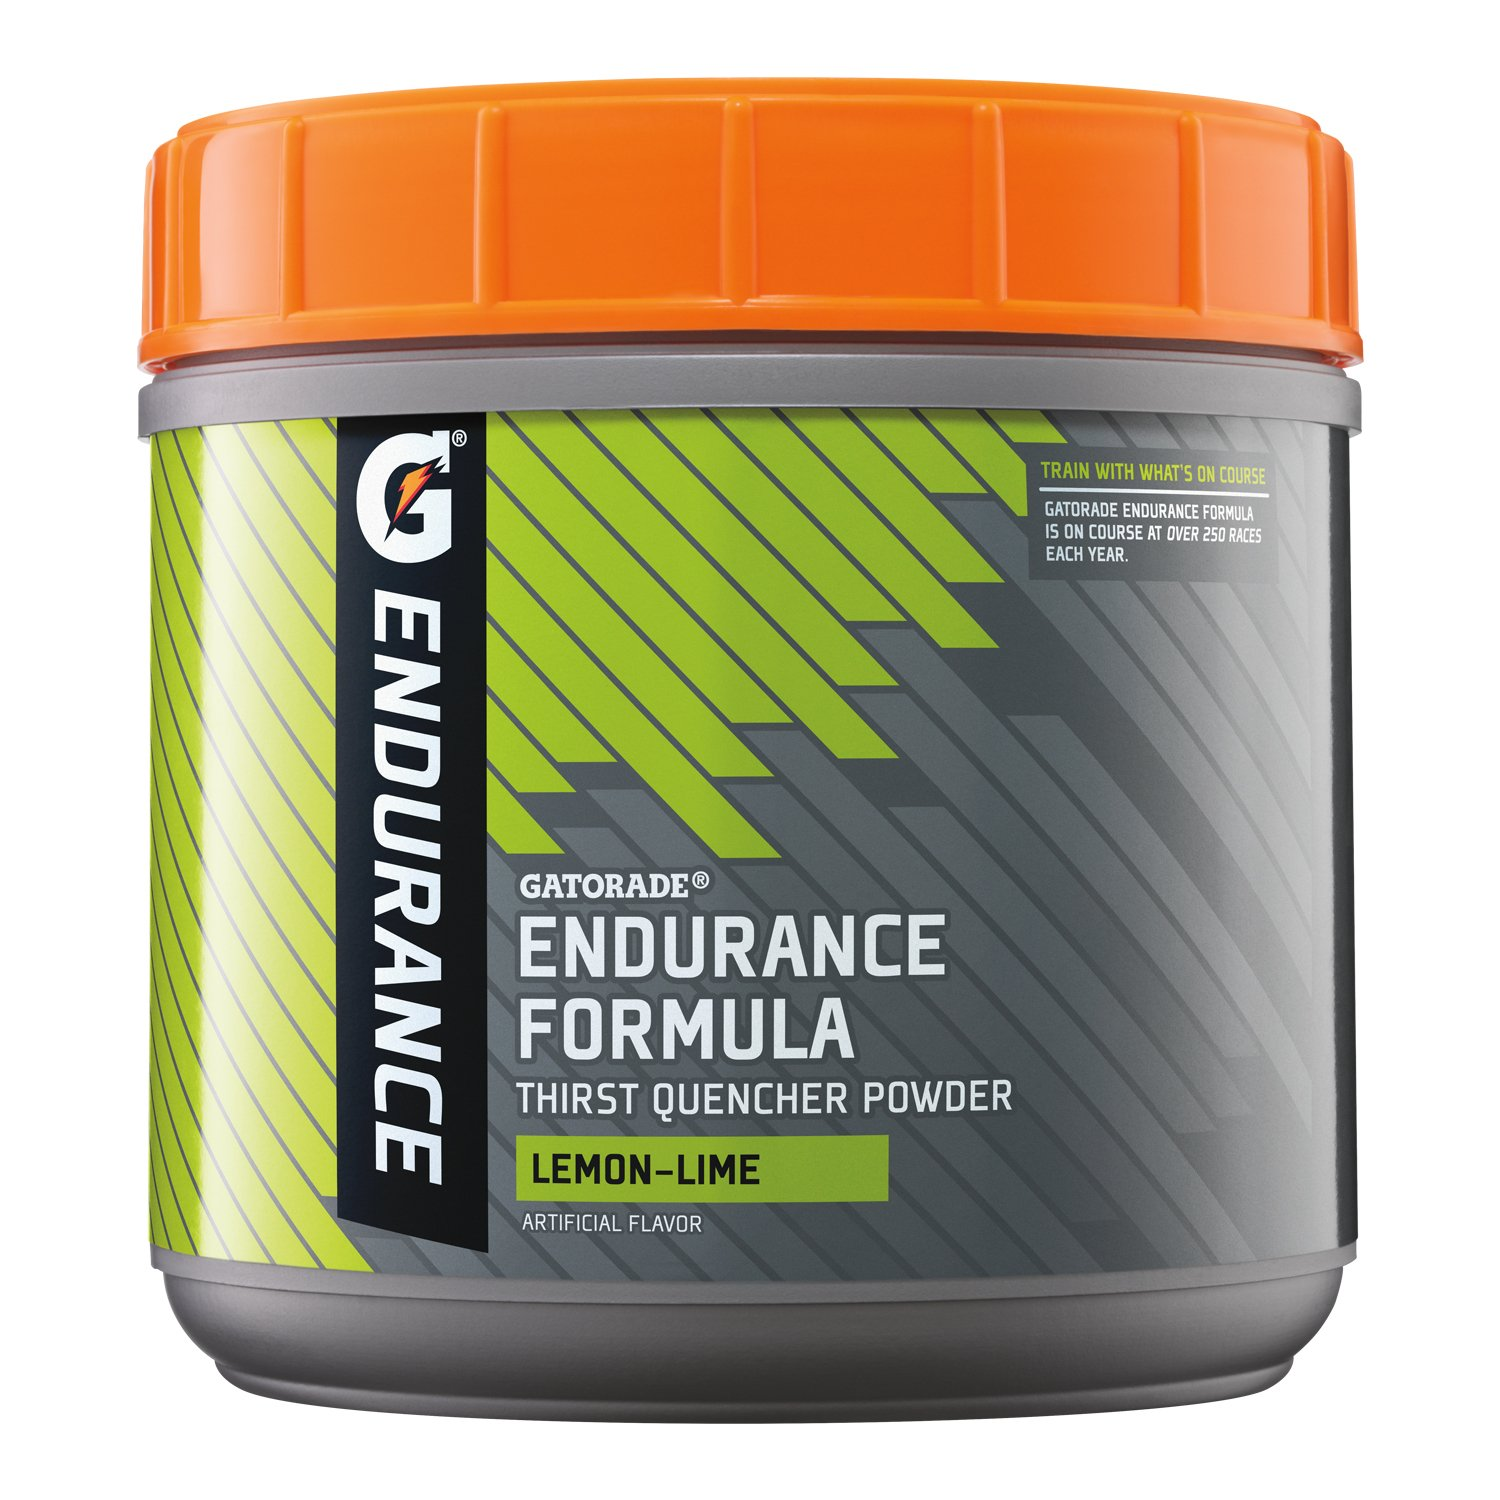 Gatorade Towels Amazon: Flavor: Lemon Lime With Nearly Double The Sodium (290 Mg